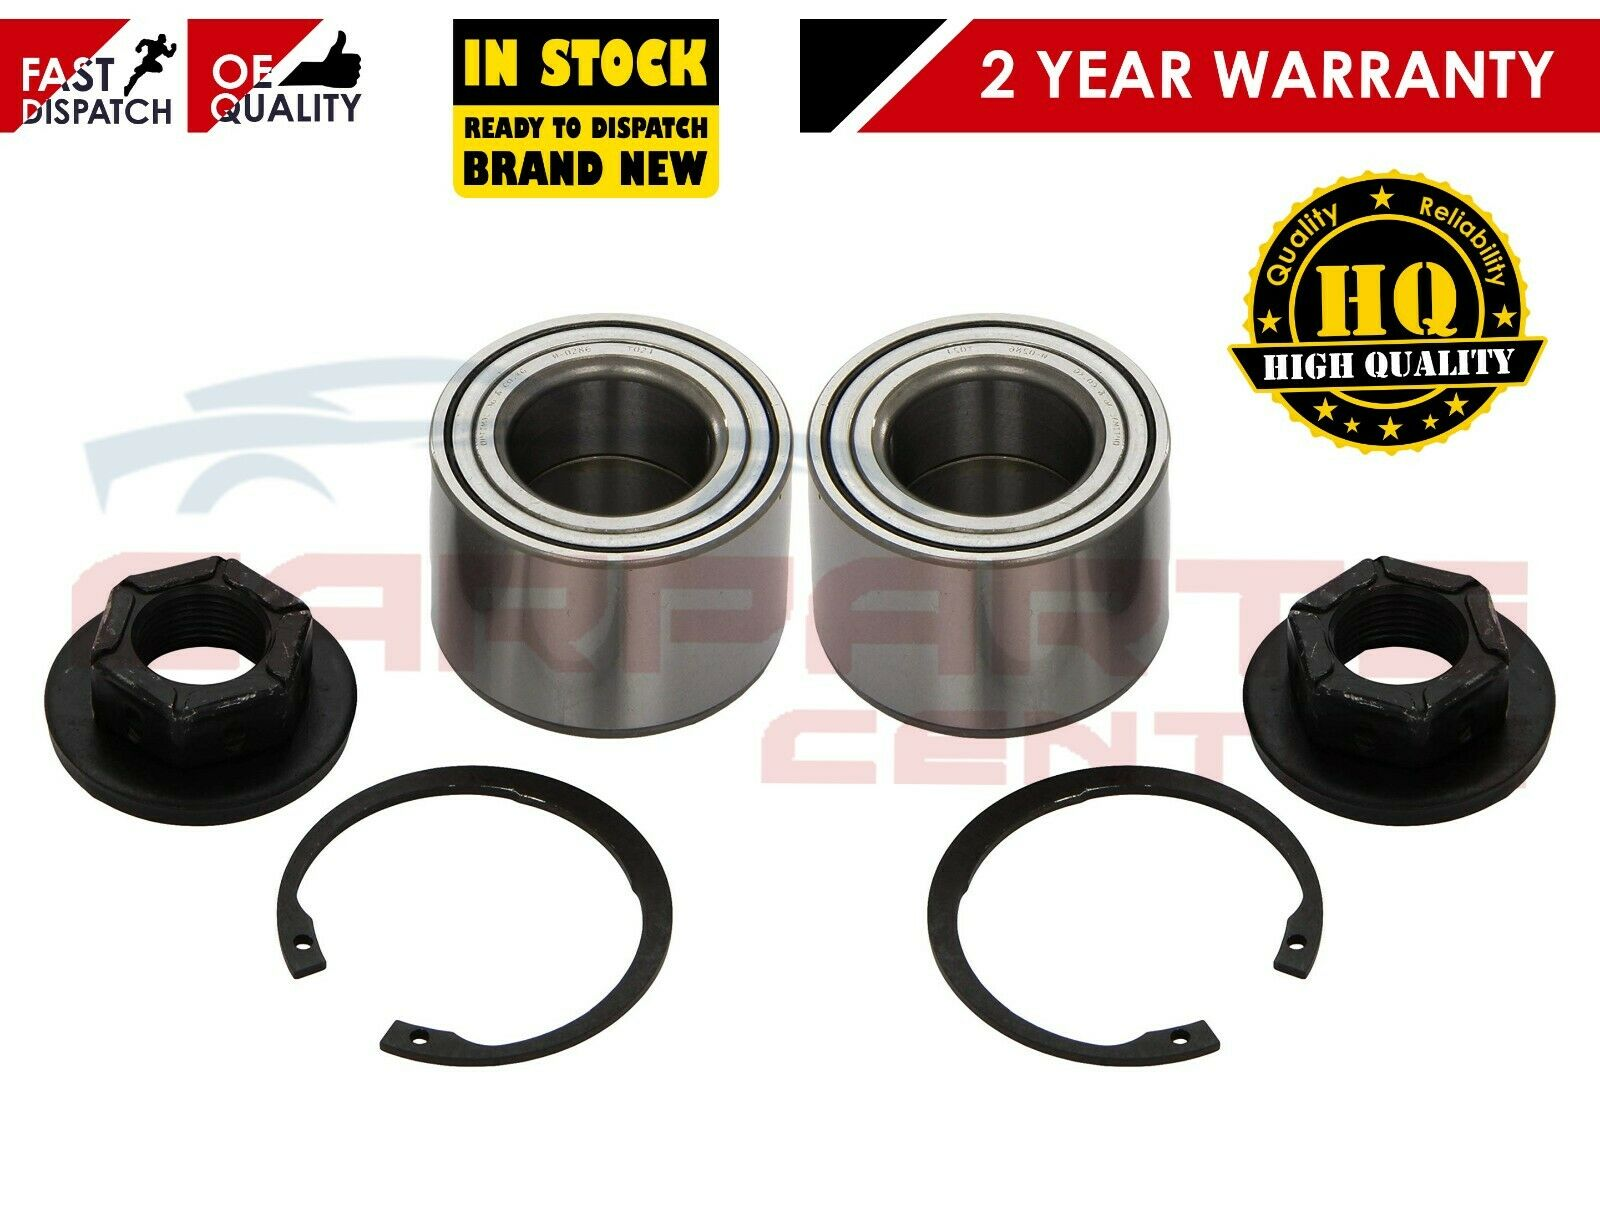 FORD FOCUS MK1 1.4 1.6 1.8 2.0 REAR WHEEL BEARING KIT 1998/>2005 *BRAND NEW*